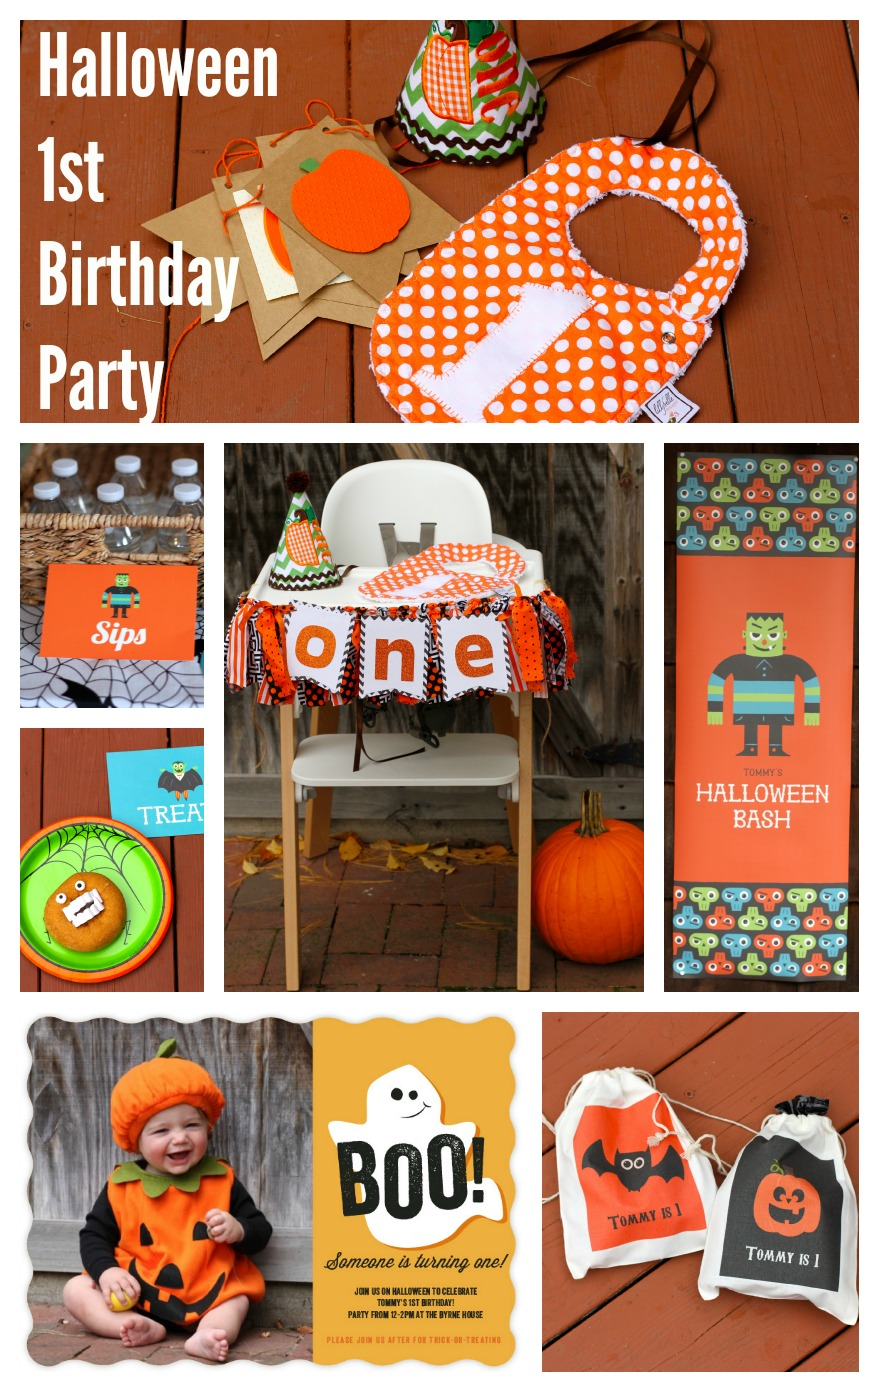 Halloween Themed Birthday Party For Toddler.A Halloween First Birthday Party Invites Decor And Party Planning